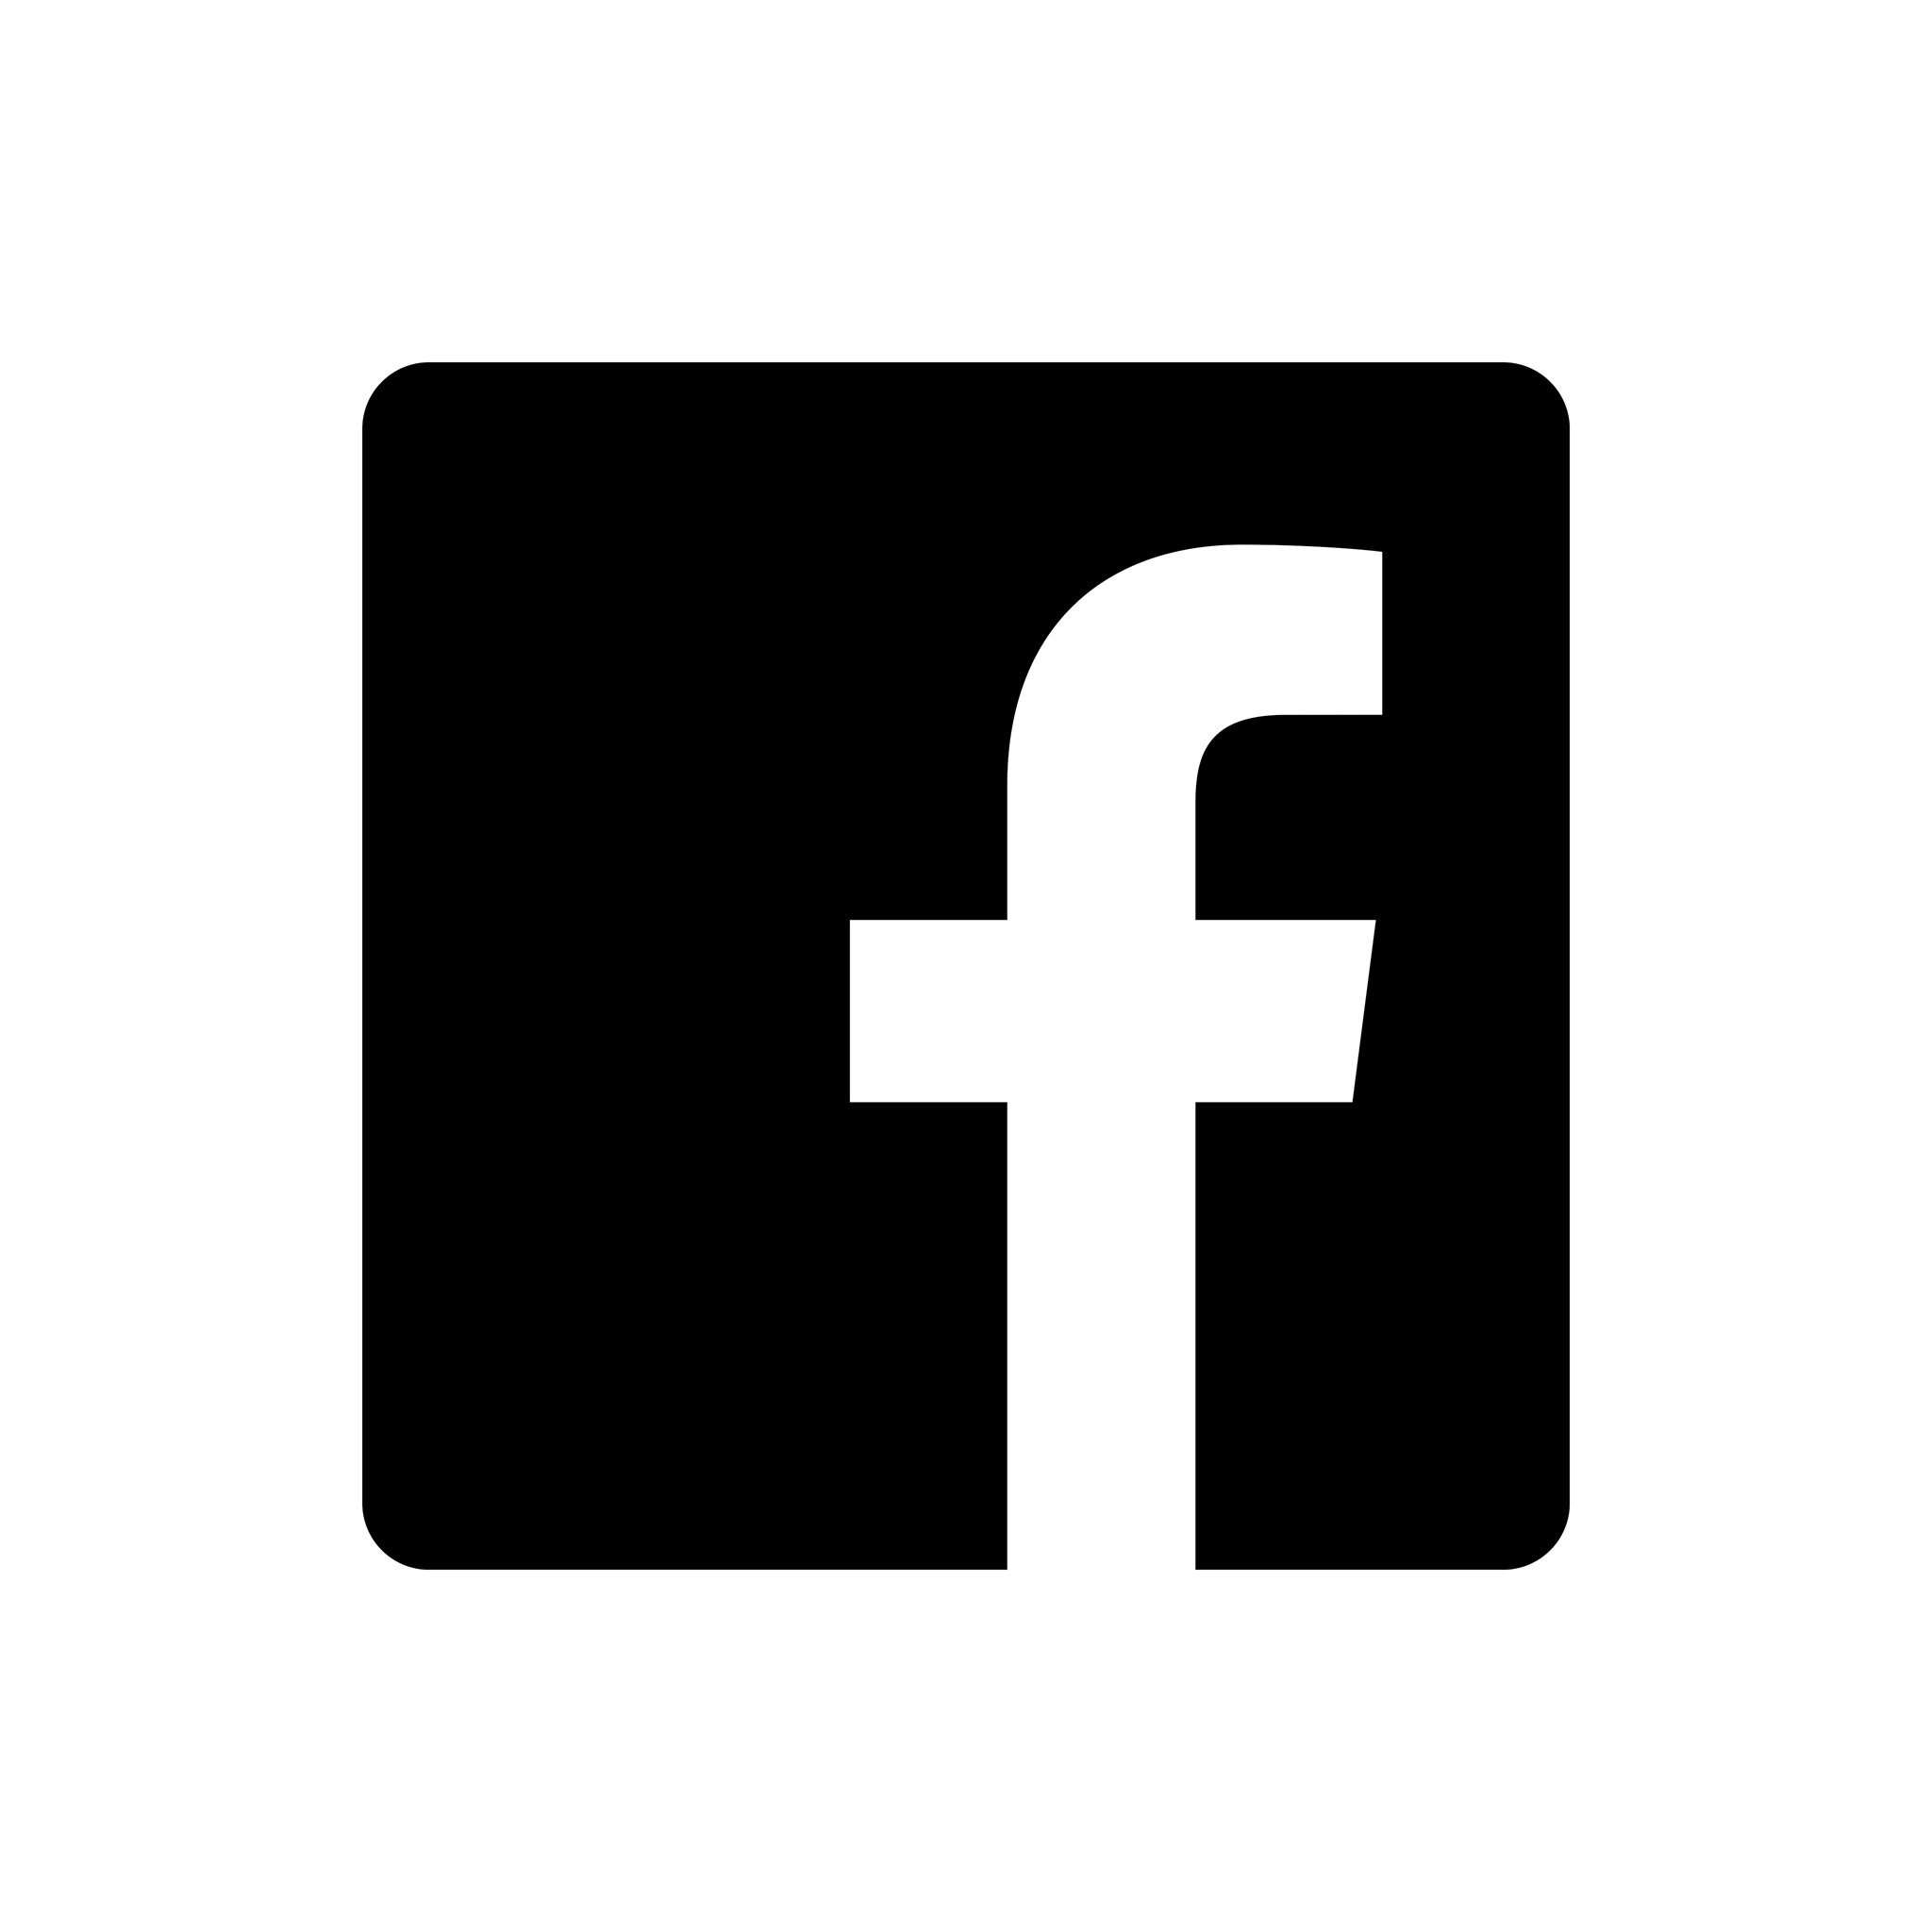 Black and white facebook logo png. Icon